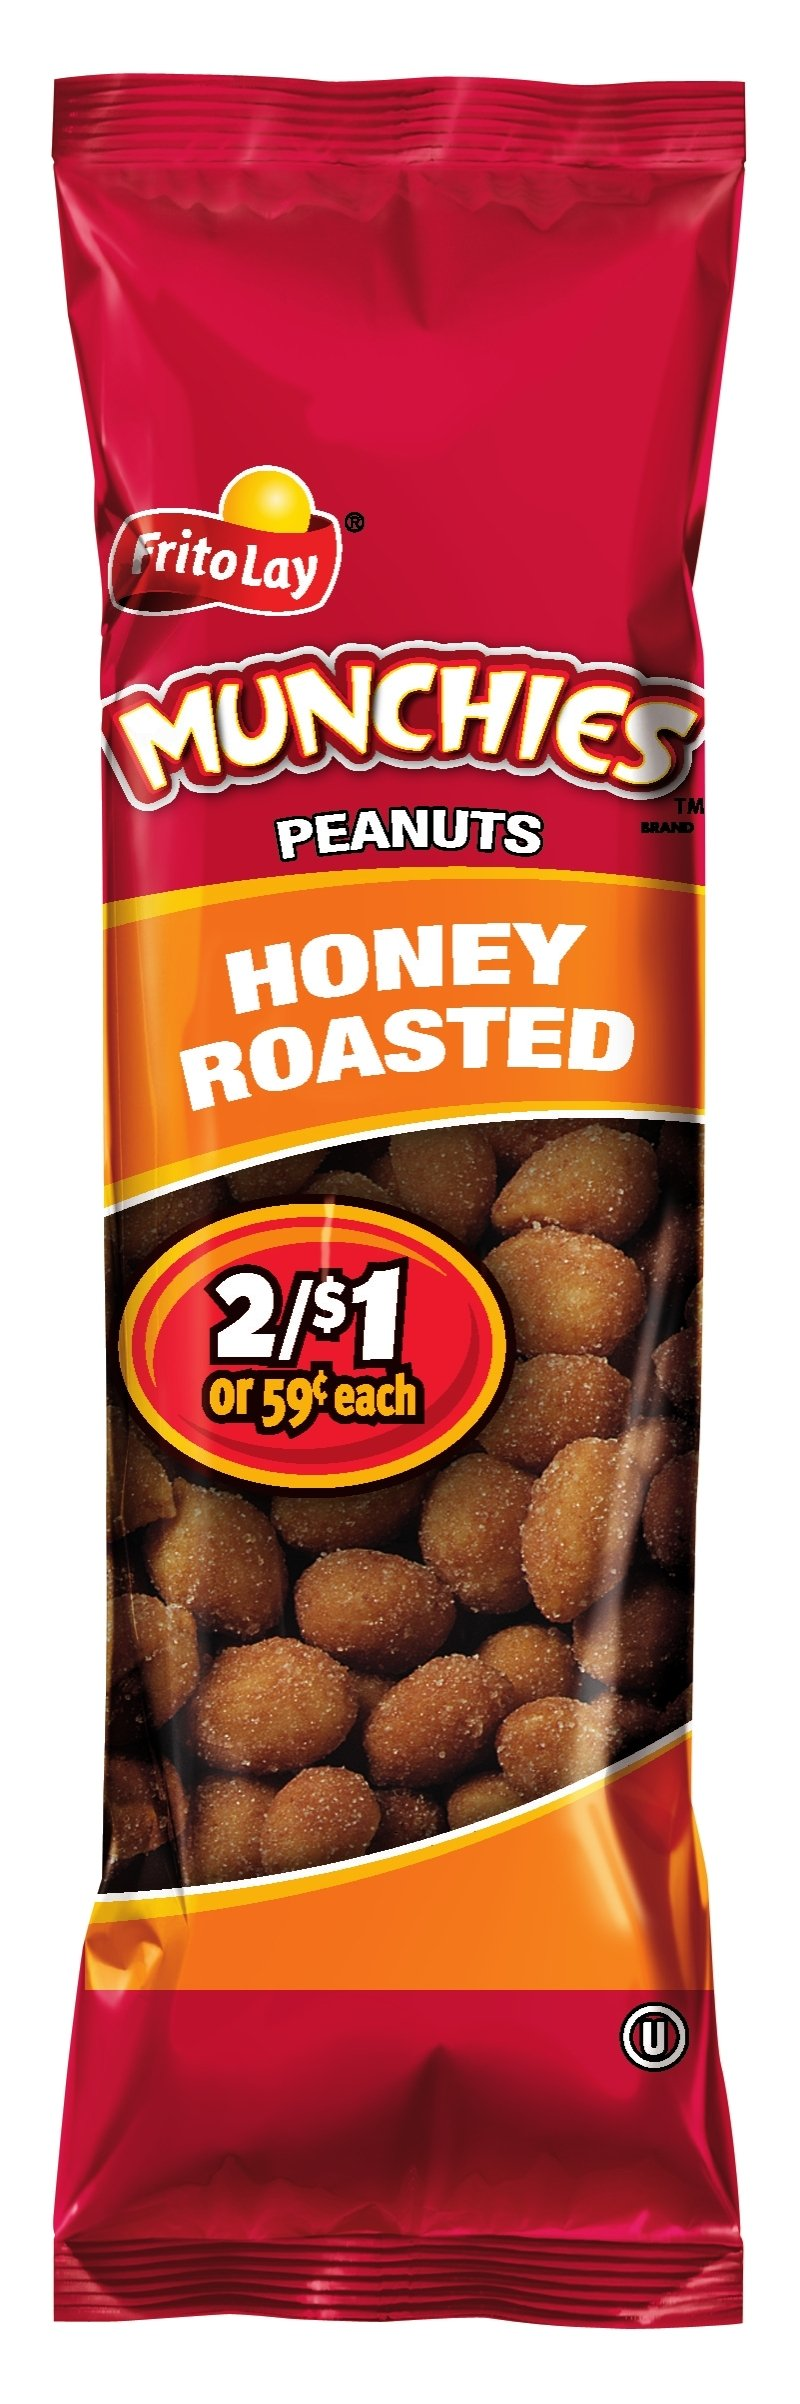 Munchies Peanuts, Honey Roasted, 1.38 Ounce (Pack of 32)